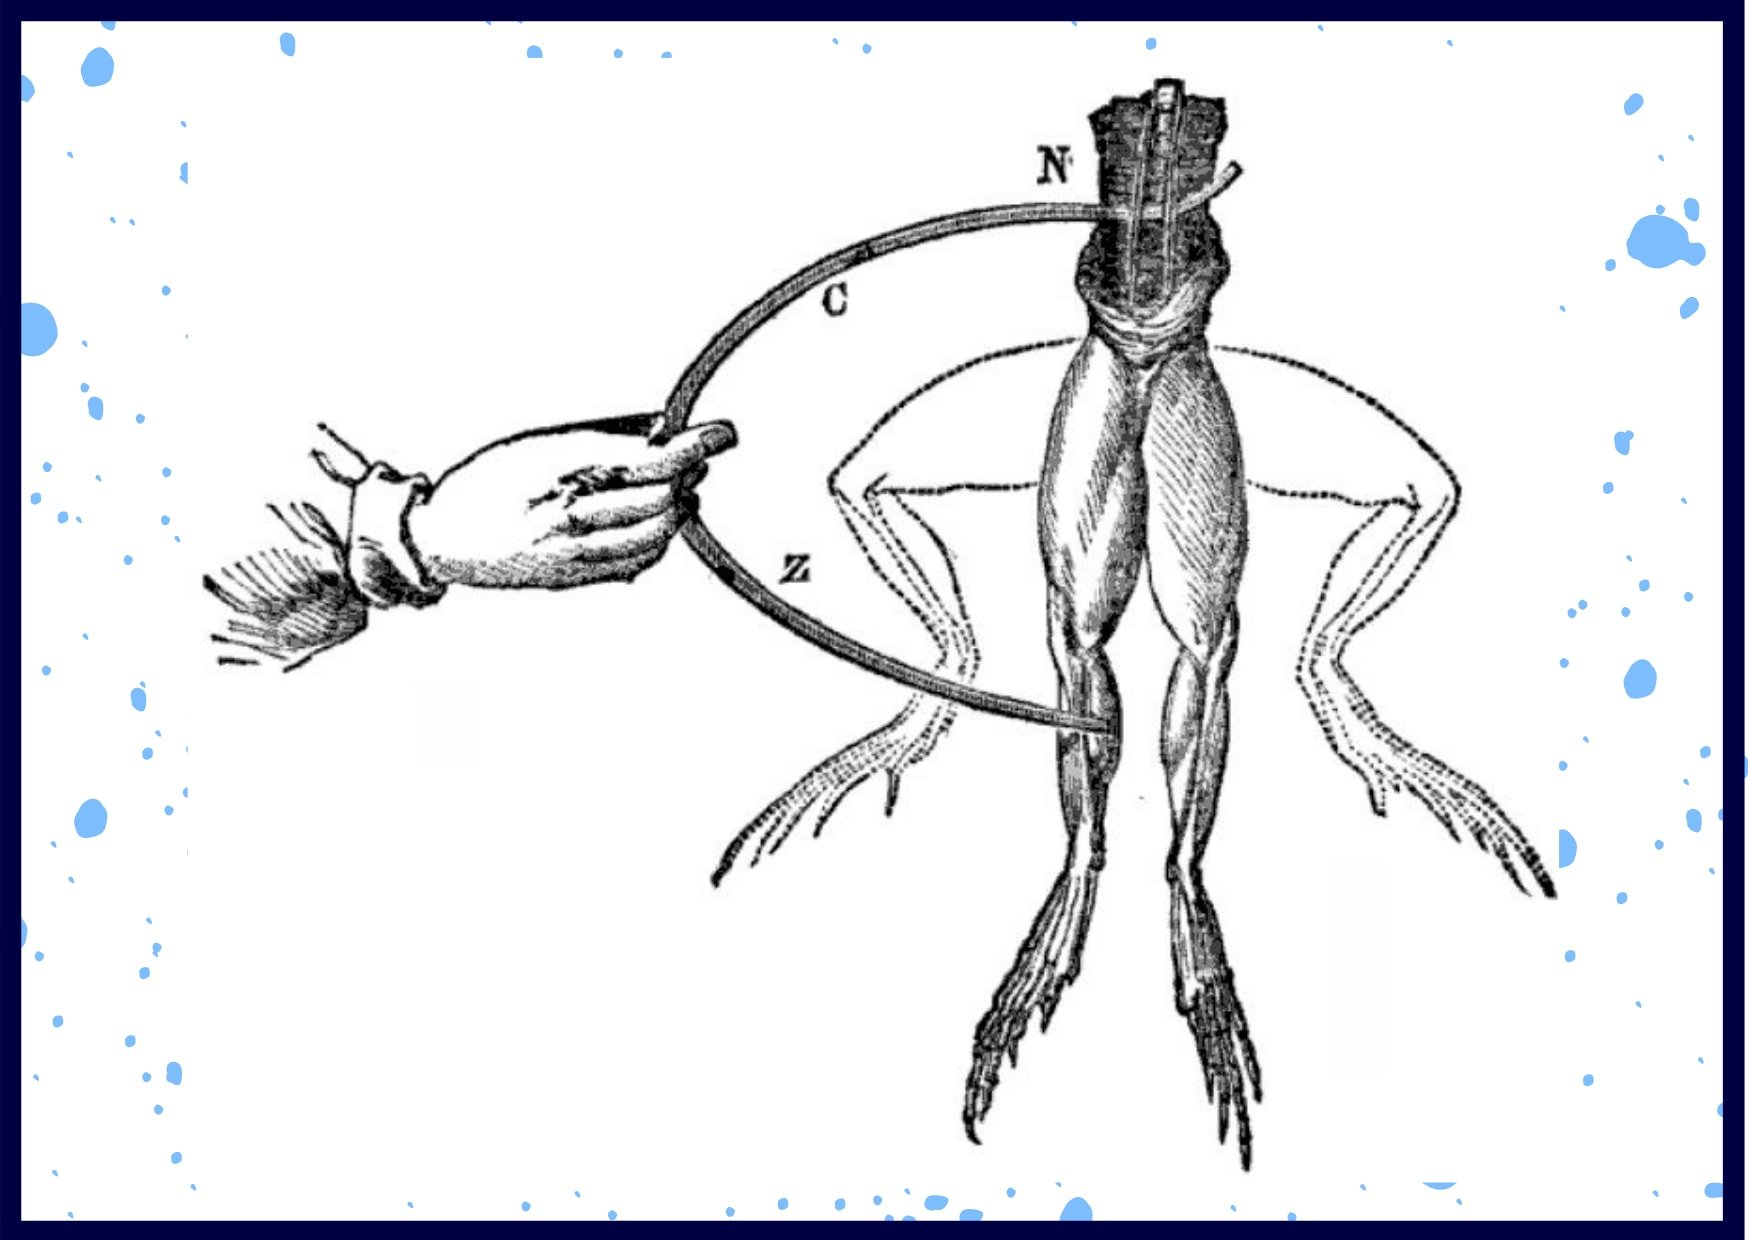 Galvani's illustration of his famous experiment